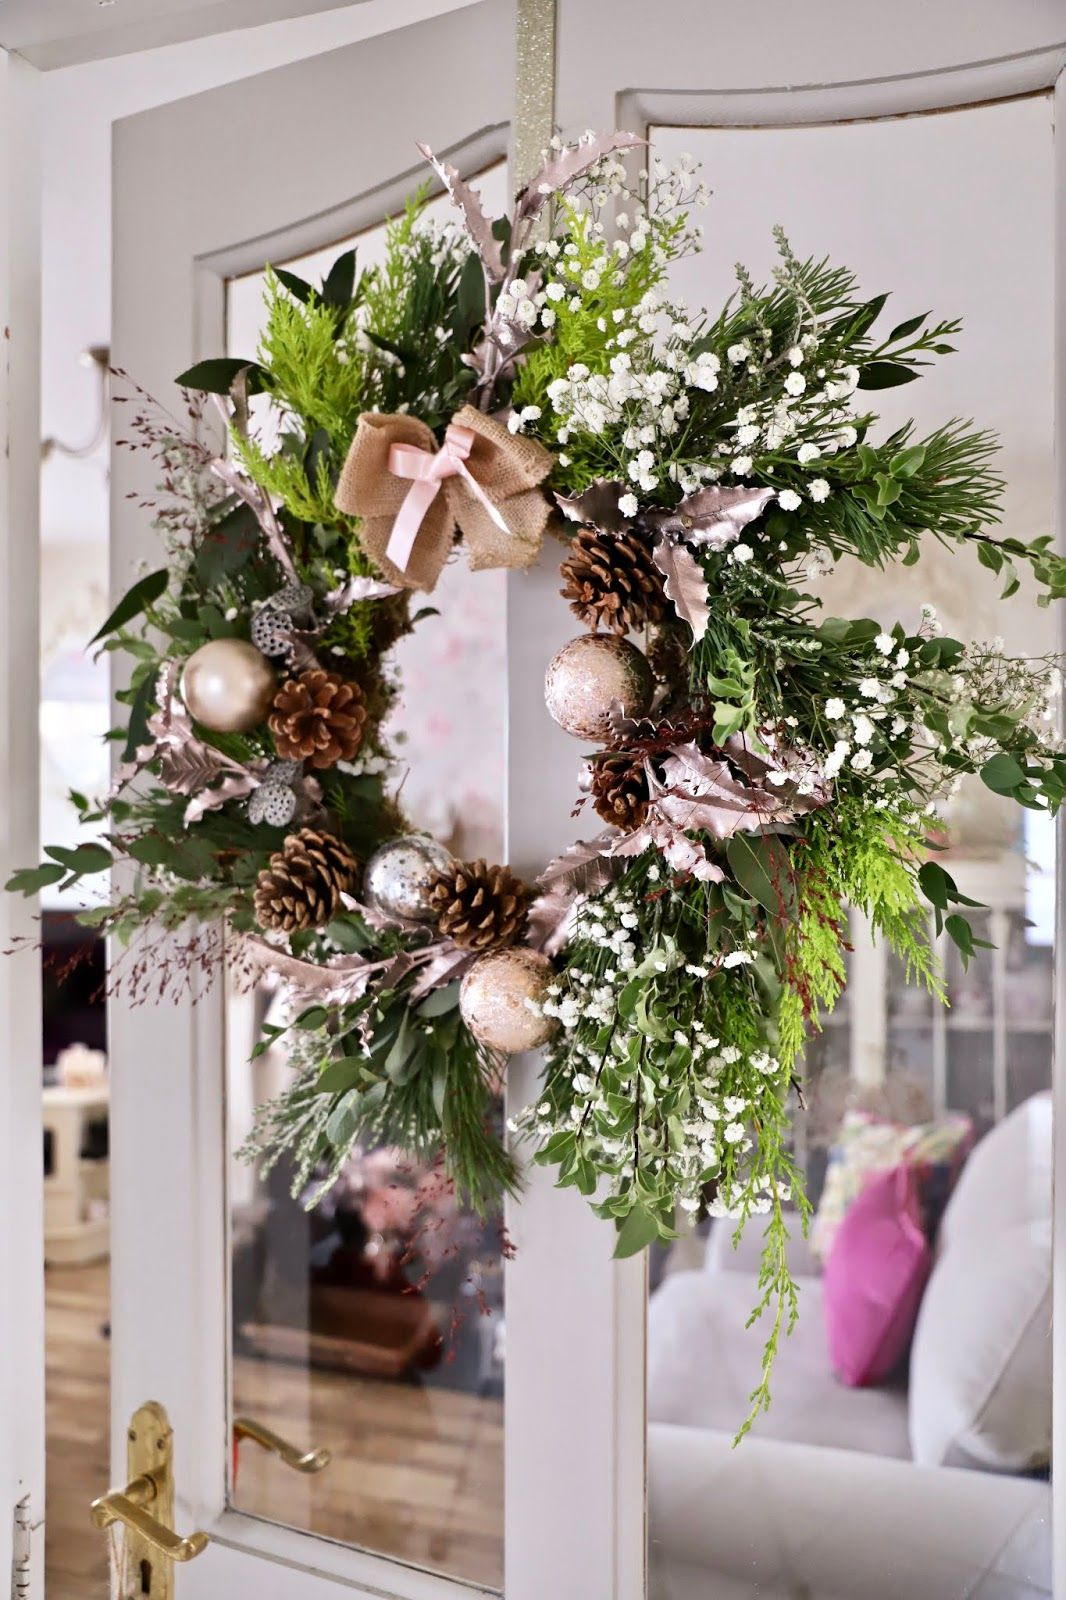 DIY Christmas wreath using fresh flowers and foliage